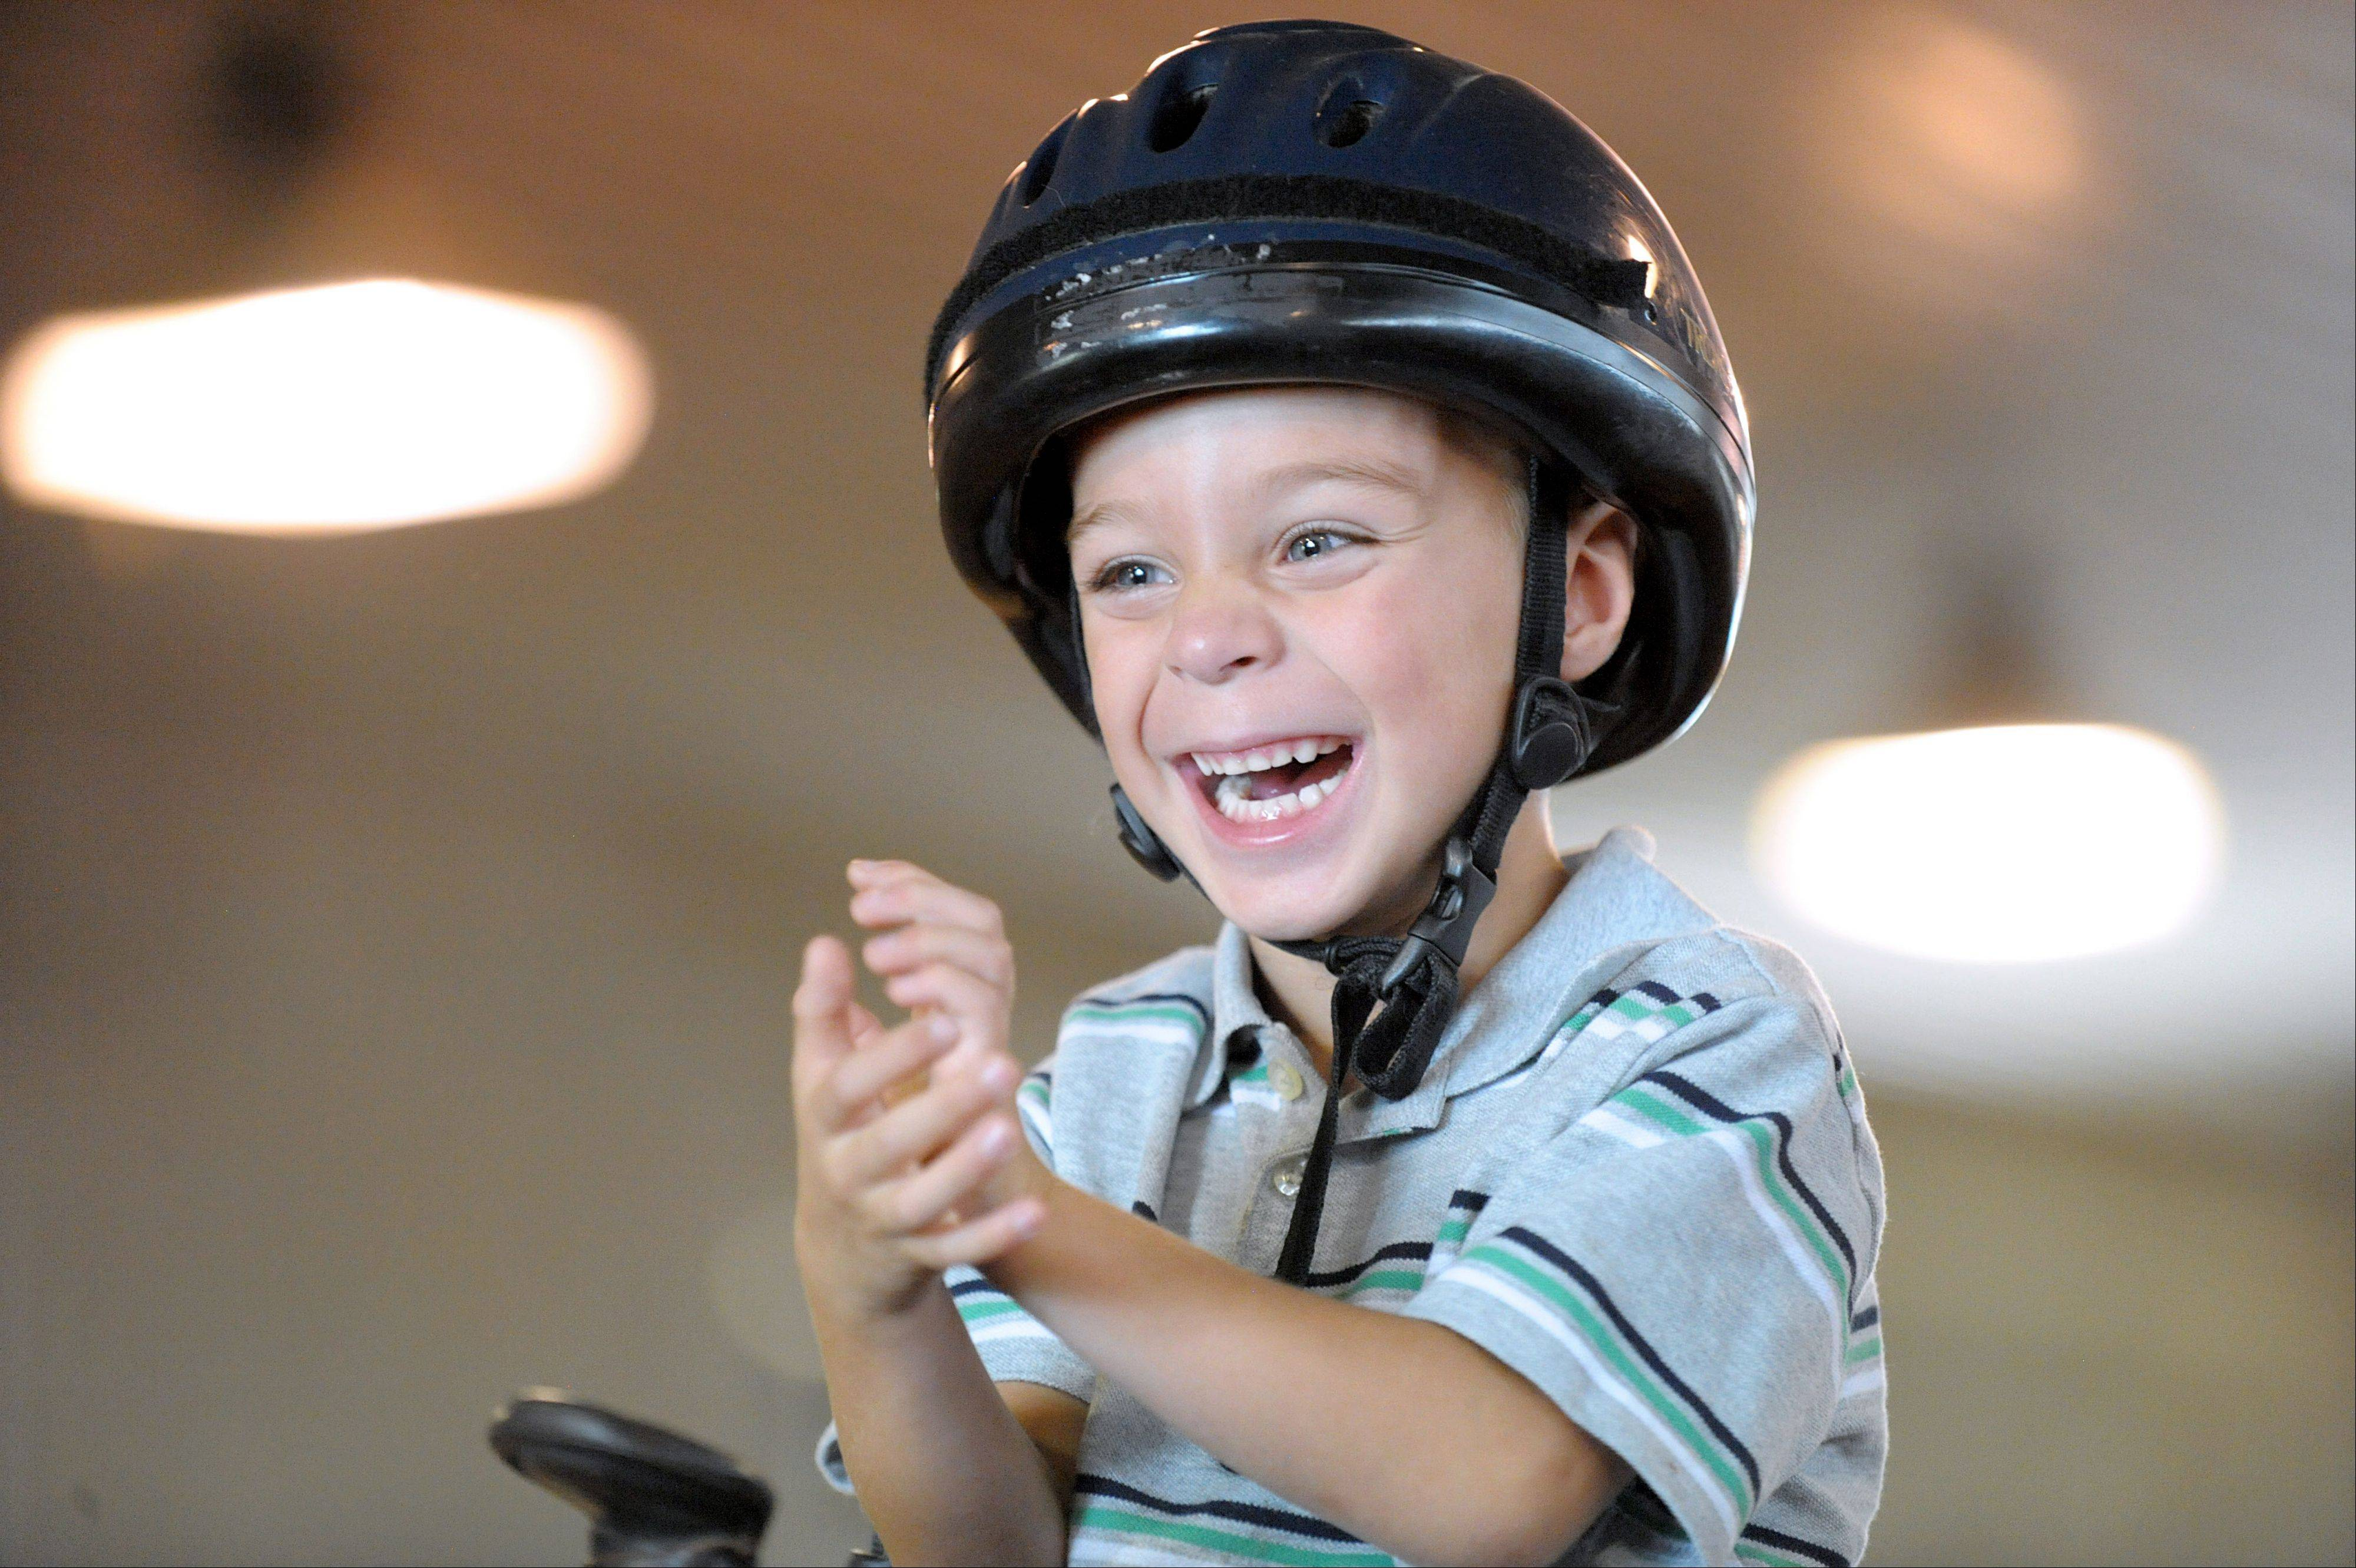 Trevin Kuhl, 4, of Sycamore, couldn't be happier during a game atop his therapy horse, Ronan, at HorsePower Therapeutic Riding in Maple Park.